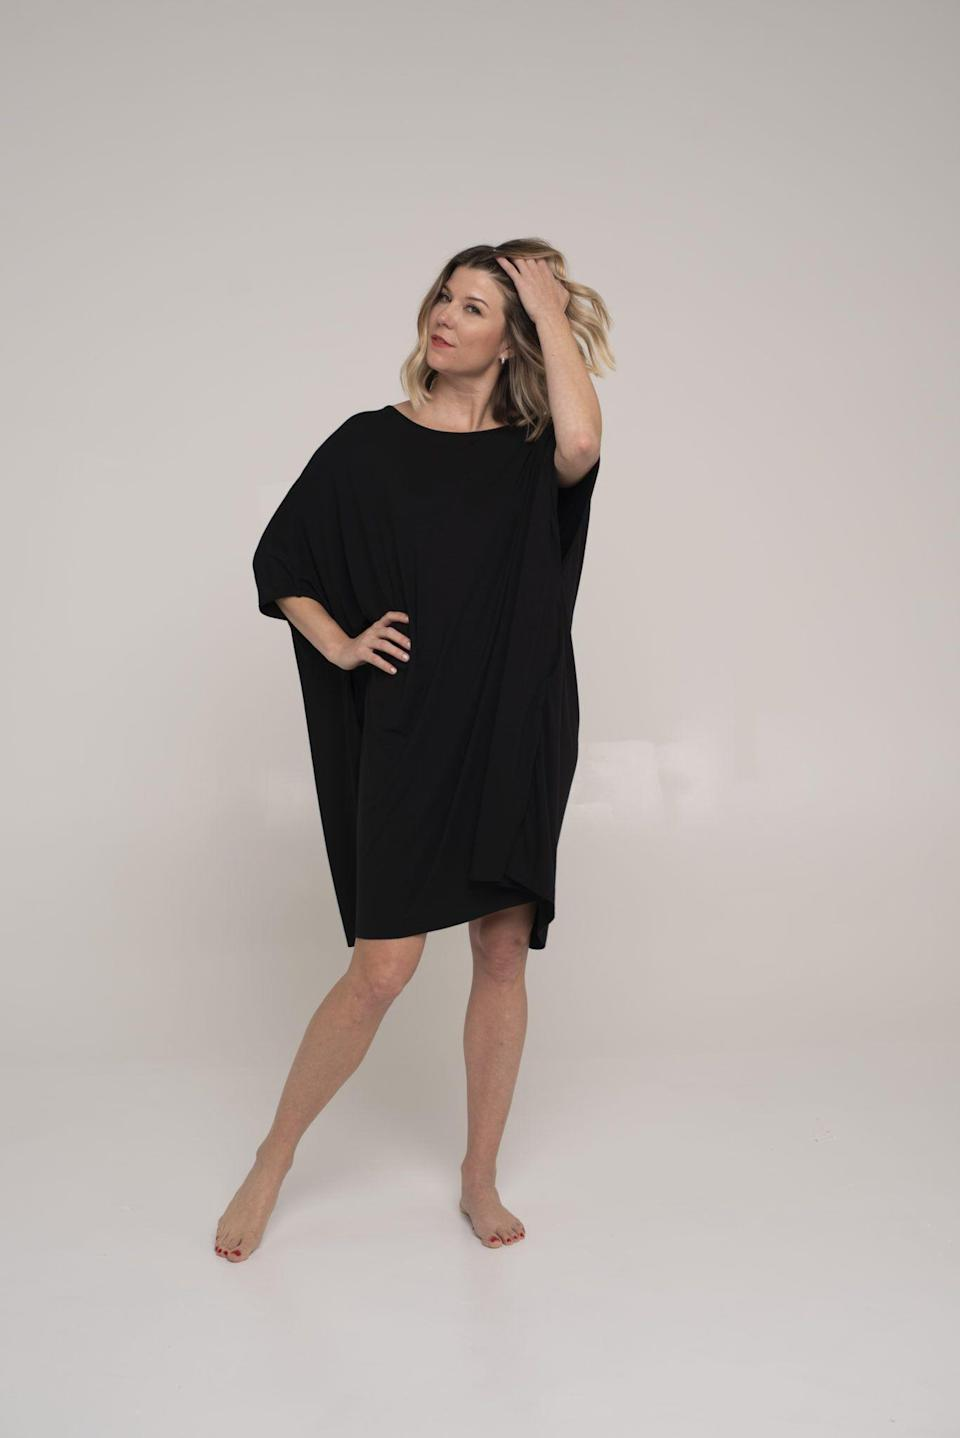 """<p>dayowomen.com</p><p><strong>$90.00</strong></p><p><a href=""""https://dayowomen.com/product/multi-everything-poncho/"""" rel=""""nofollow noopener"""" target=""""_blank"""" data-ylk=""""slk:Shop Now"""" class=""""link rapid-noclick-resp"""">Shop Now</a></p><p>A minimalist's dream, this poncho dress can be dressed up or down for whatever your days holds. It totally works as a sleep dress, or can be worn for errands or even a night out. </p>"""